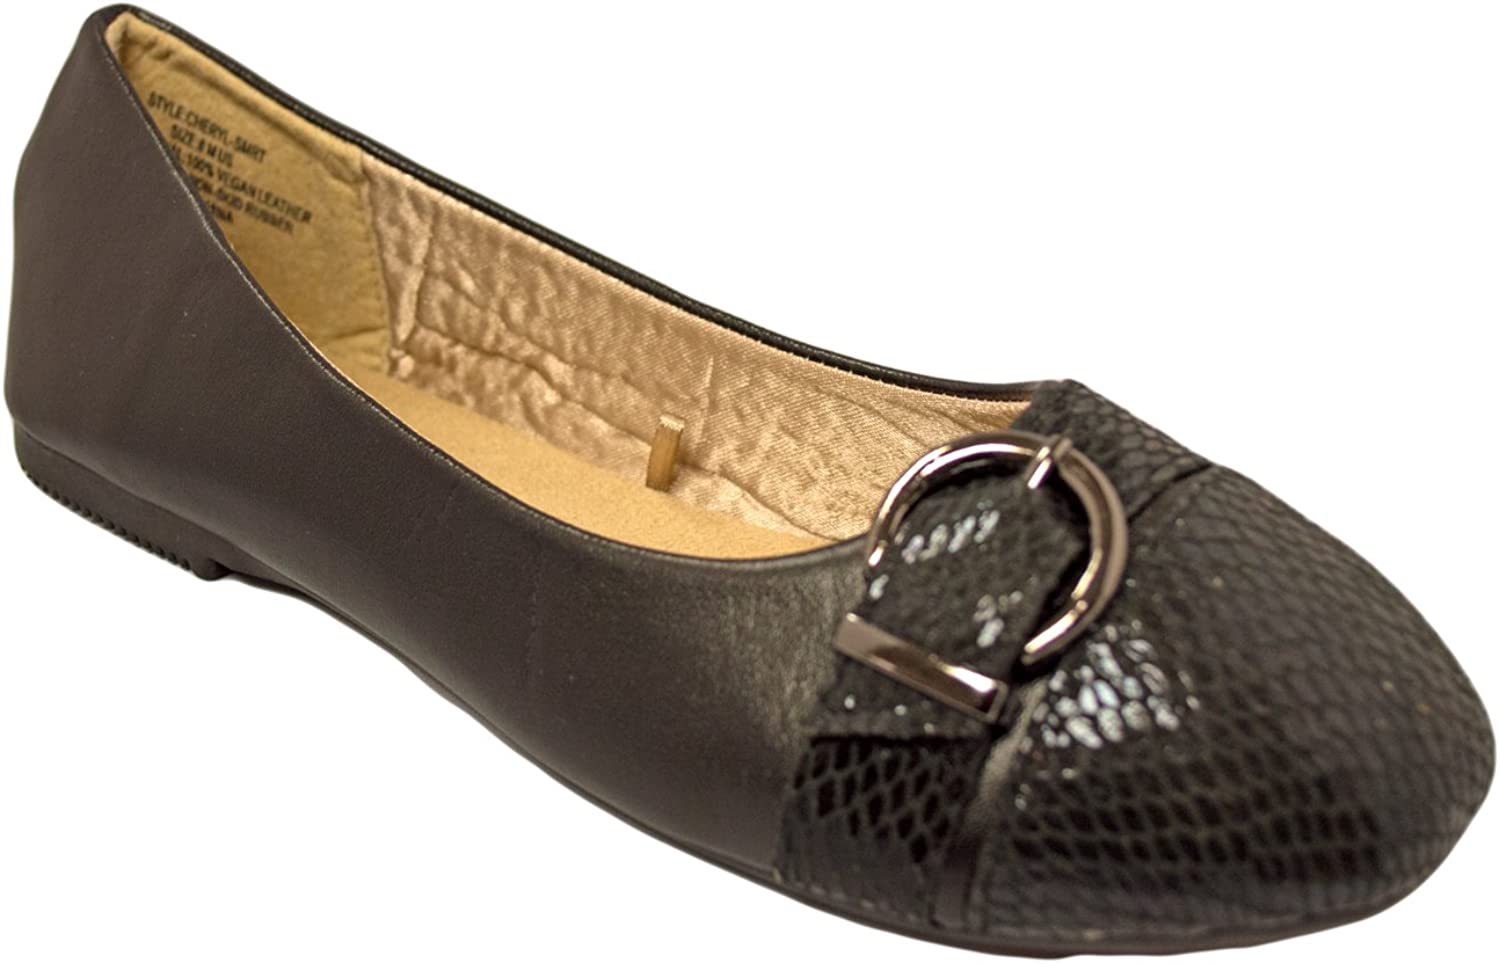 Charles Albert Women's Vegan Leather Memory Foams with Buckle Strap Ballet Flat